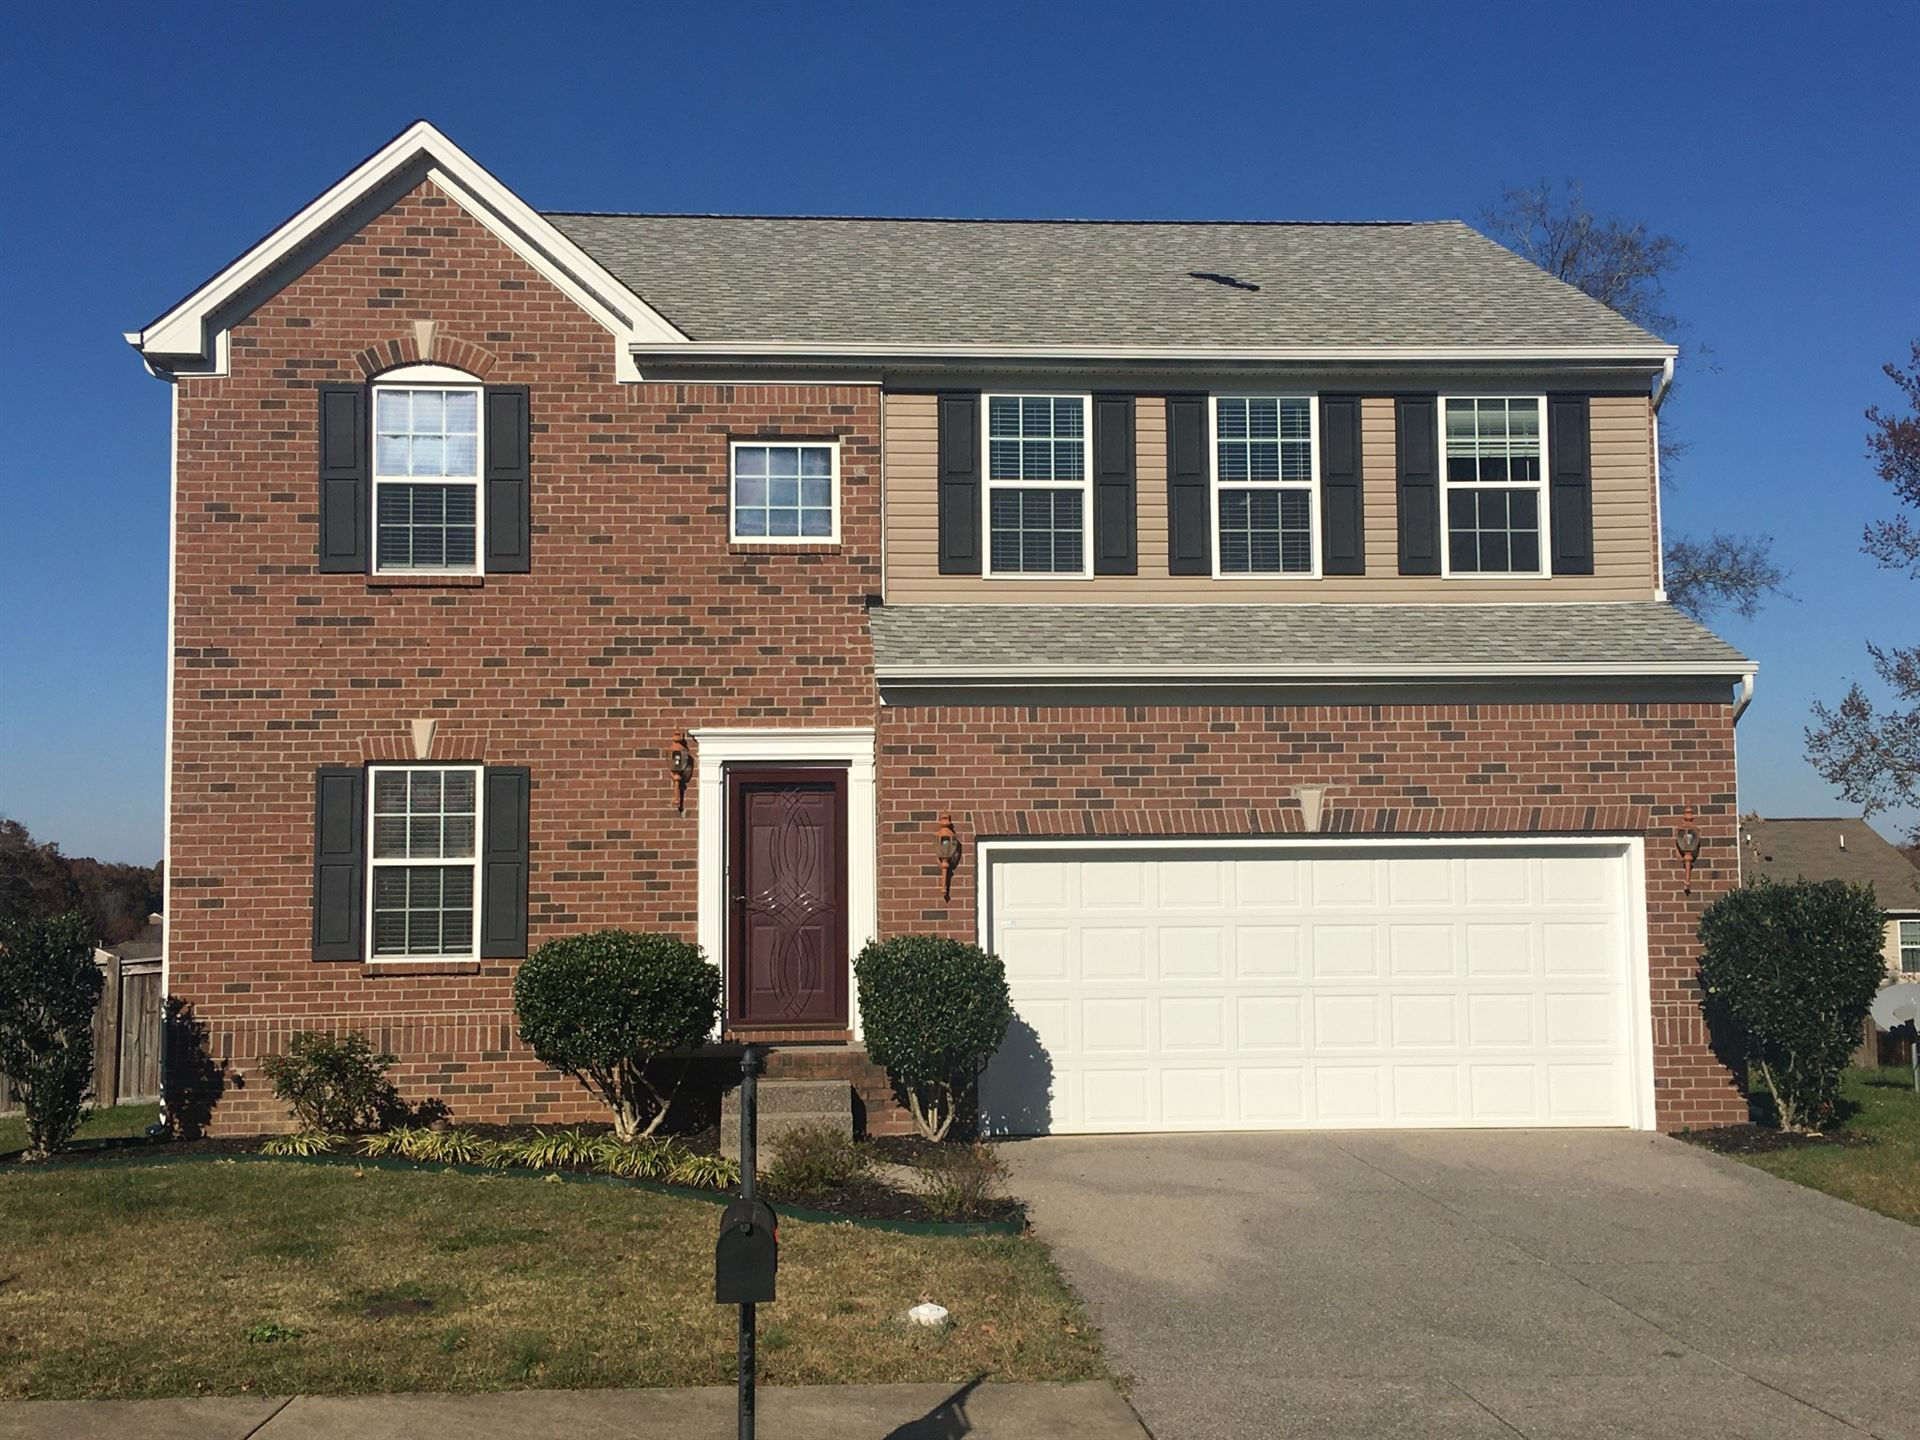 2101 Chance Ct, Hermitage, TN 37076 - MLS#: 2206567